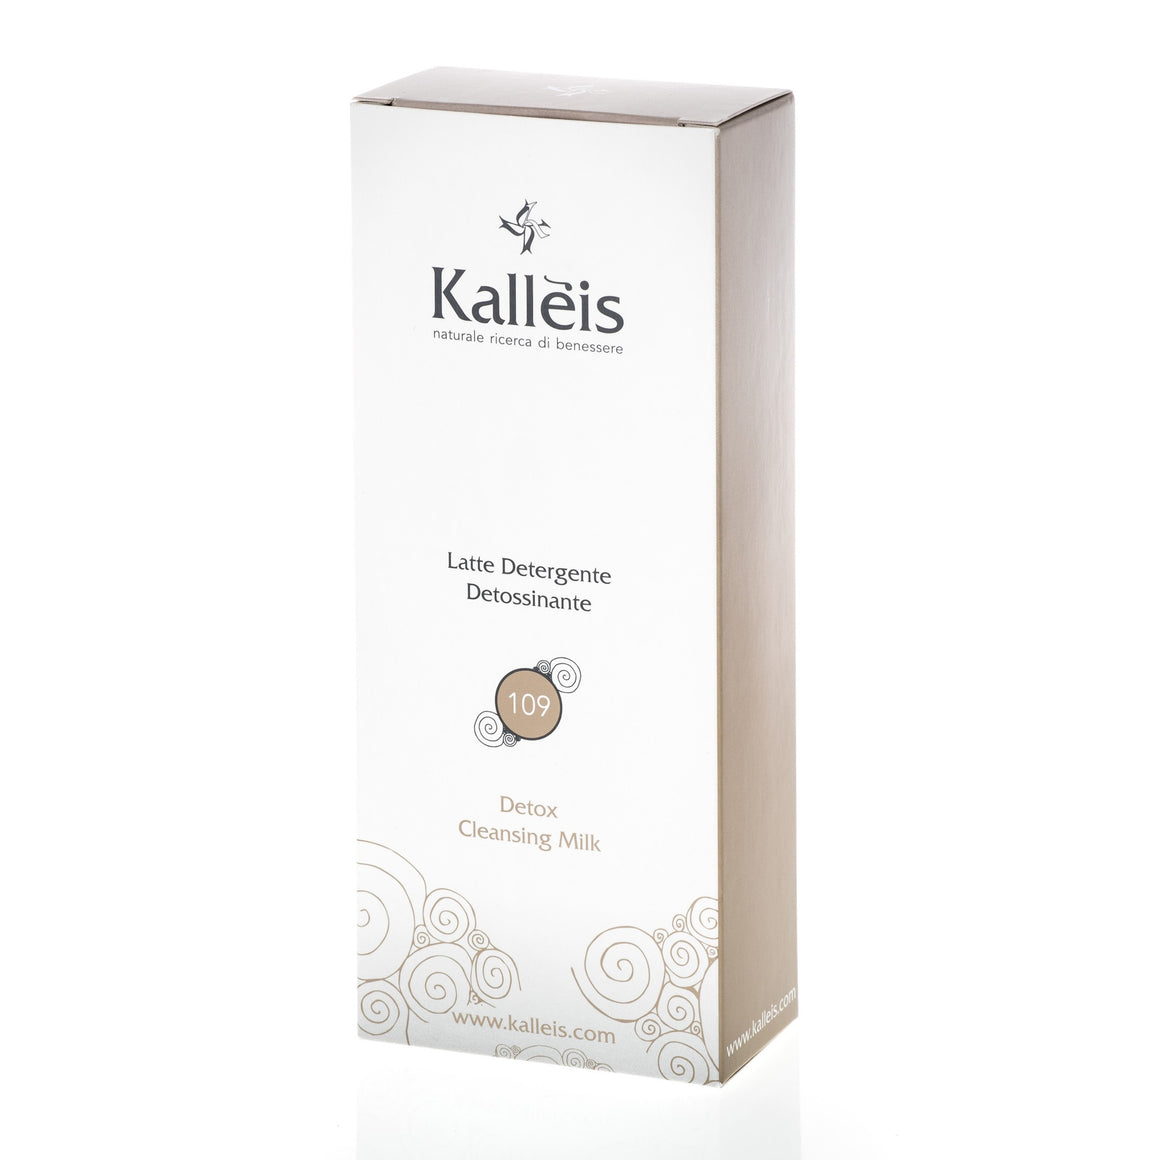 Kallèis Detox Cleansing Milk is enriched with soothing moisturizing properties from Vitamin E, Soy Protein Hydrolysate and Ivy Extract to preserve the skin's softness